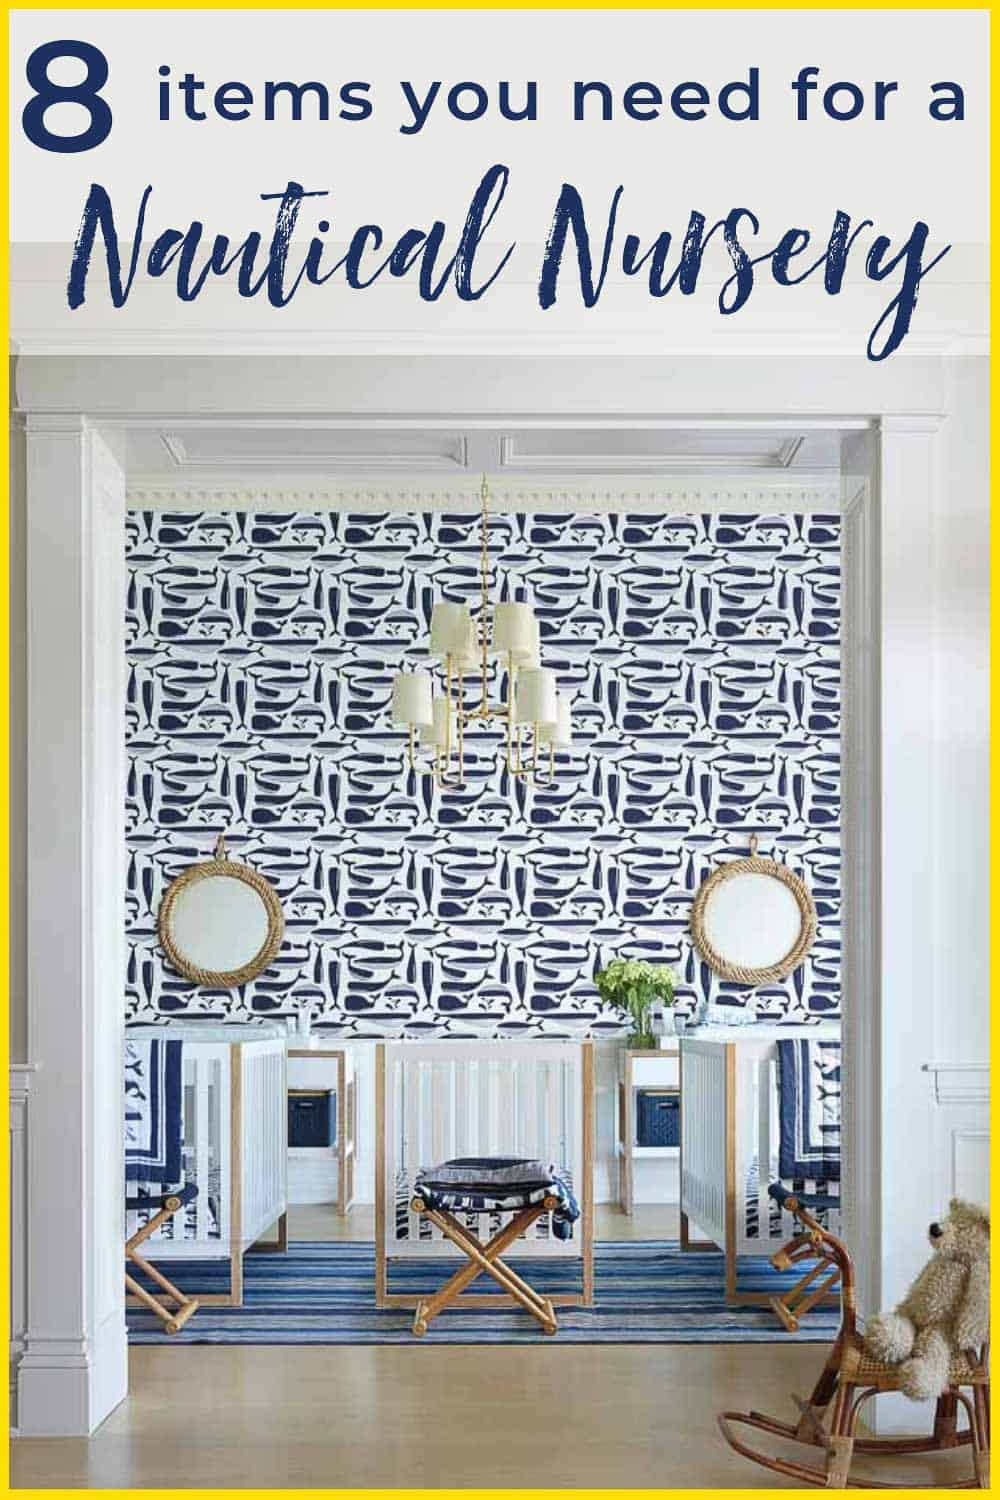 Get inspiration for your nautical nursery with 8 tips for creating a gorgeous gender-neutral room for baby. #serenaandlily #nurseryinspiration #nurseryideas #nauticalnursery